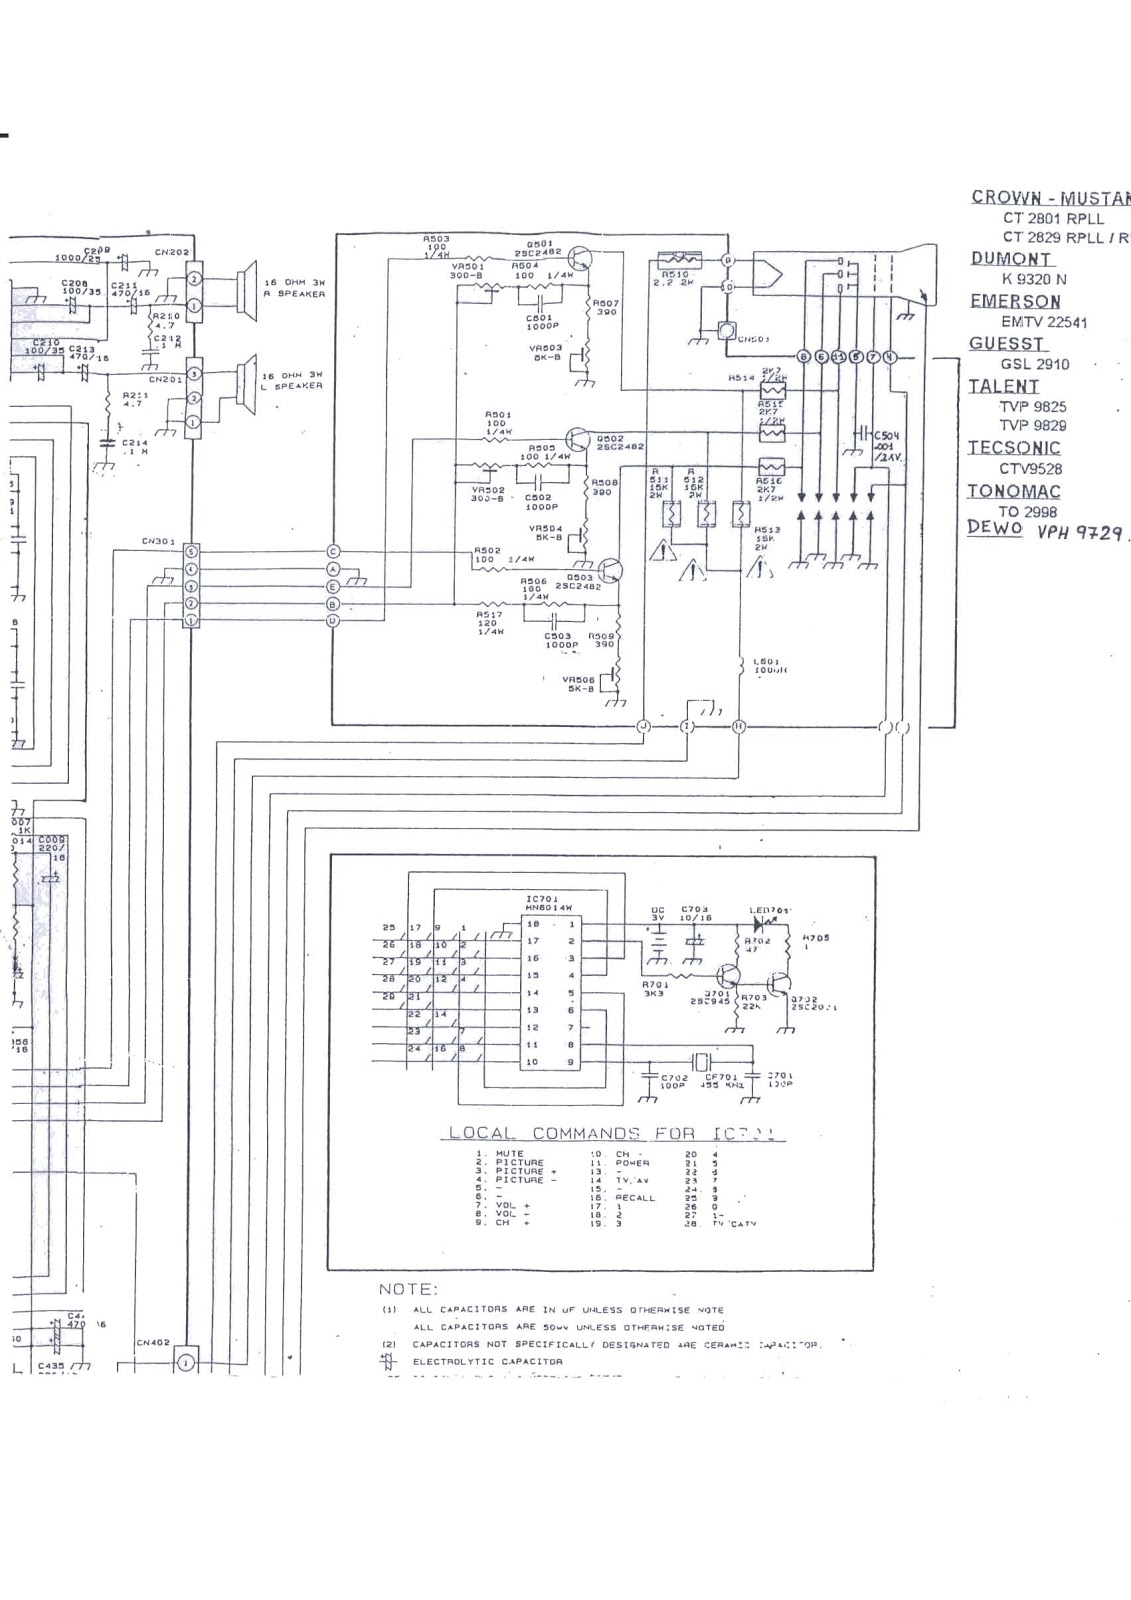 awesome ford 7710 tractor wiring diagram photos best image diagram wiring diagram ford [ 1131 x 1600 Pixel ]